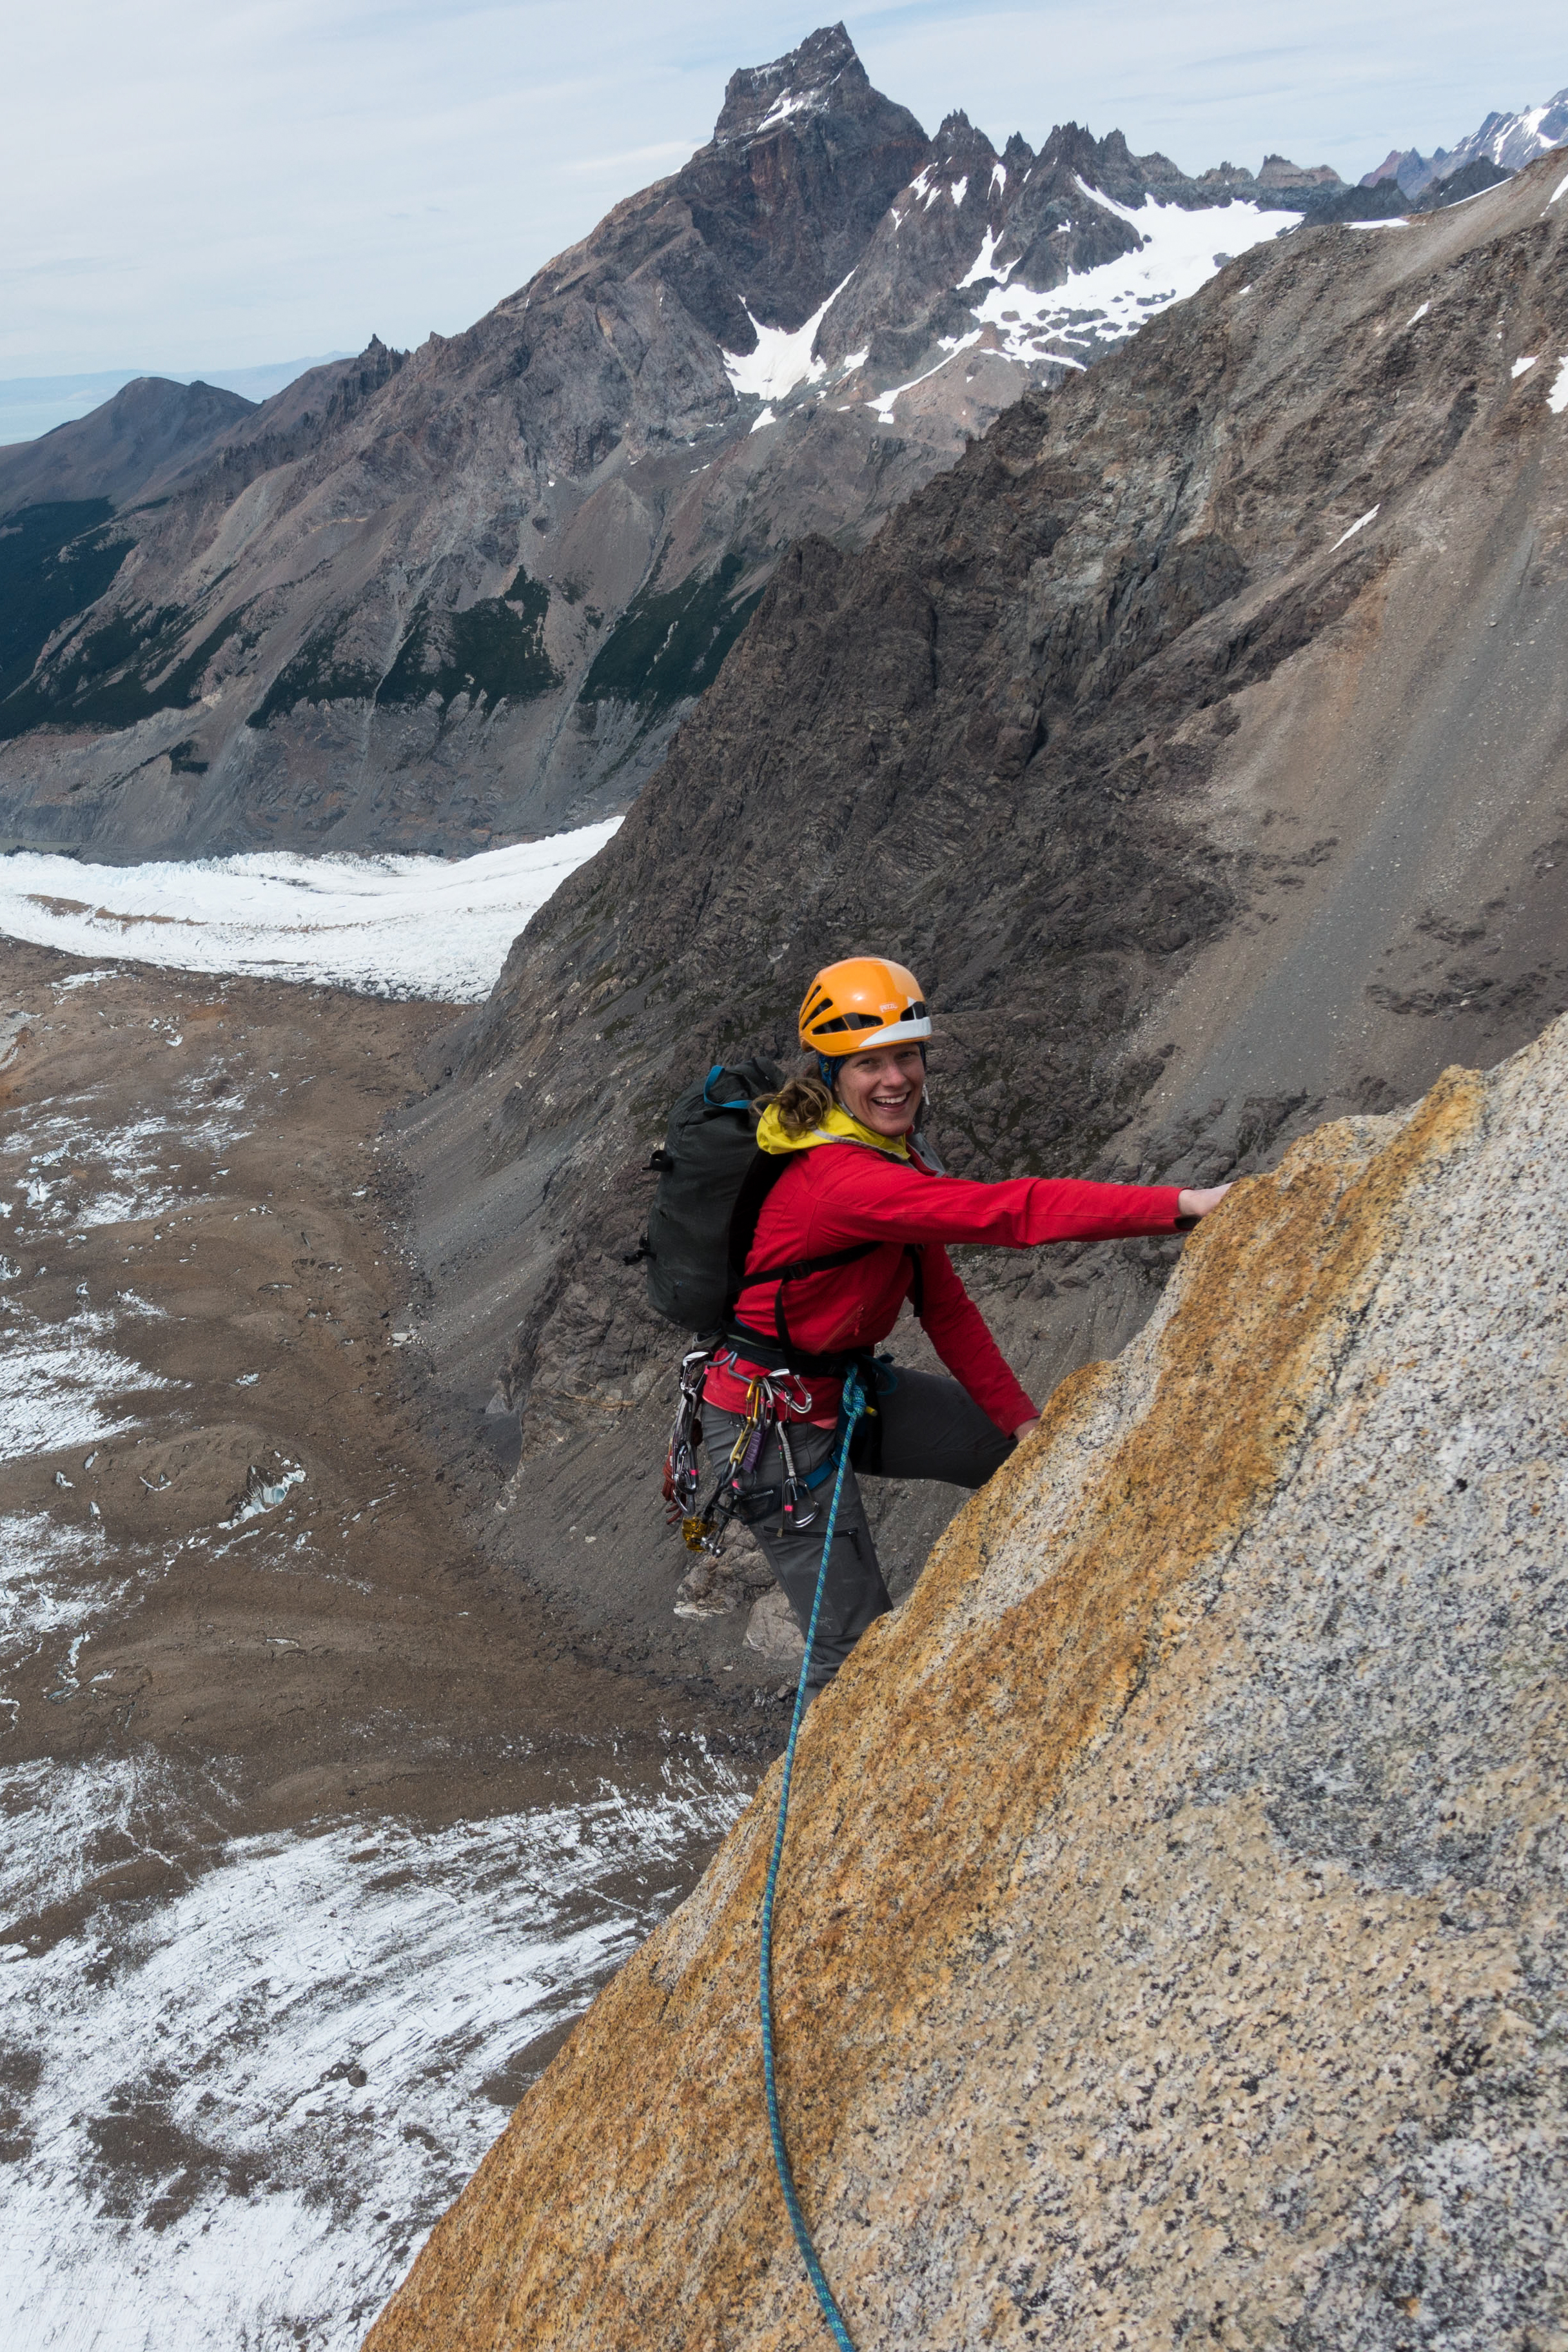 Hannah psyched on Voie Des Benitiers 12b, El Mocho. Our first climb in Patagonia! Photo by Michelle Kadatz.